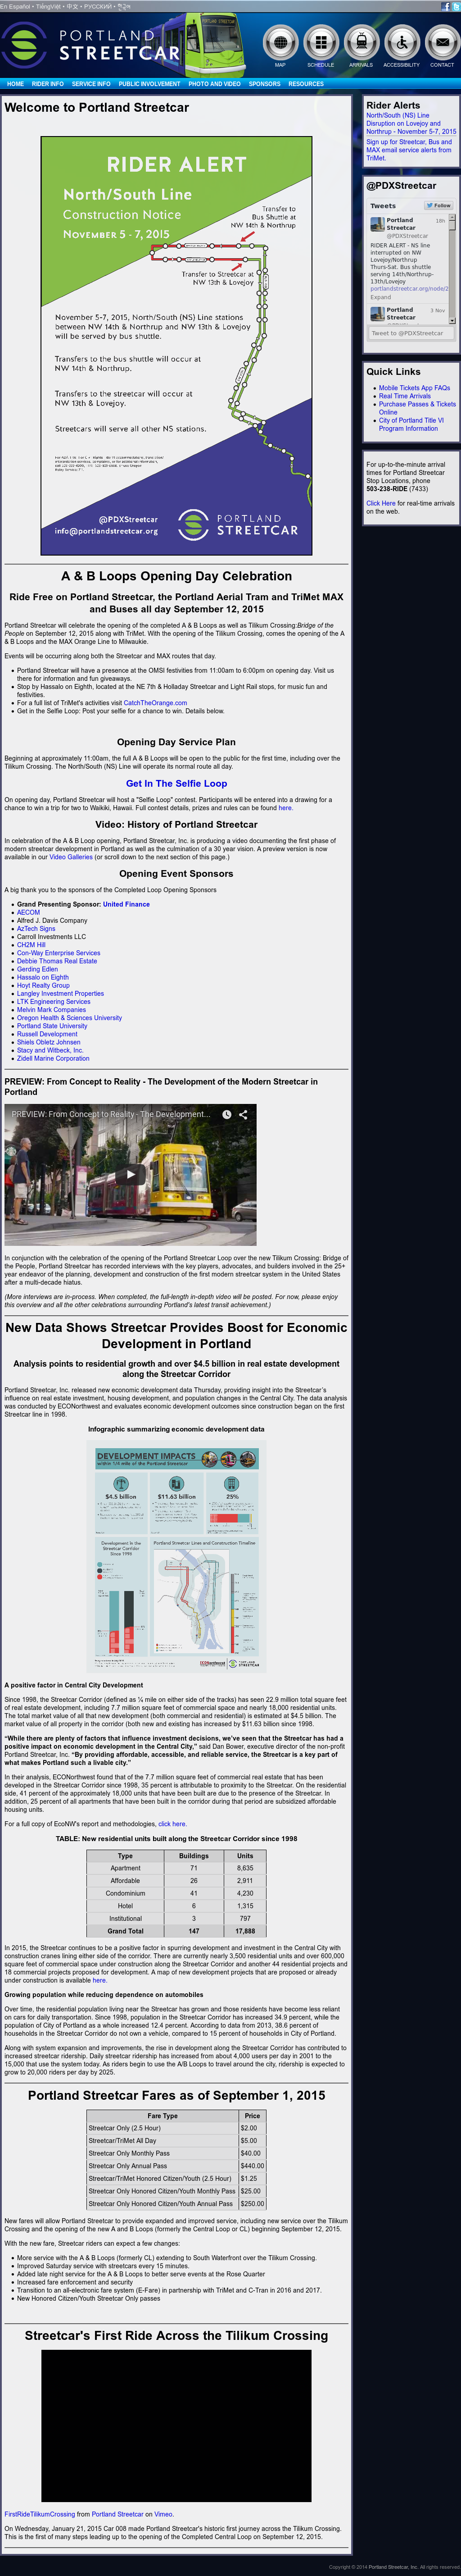 Portland Streetcar Competitors, Revenue and Employees